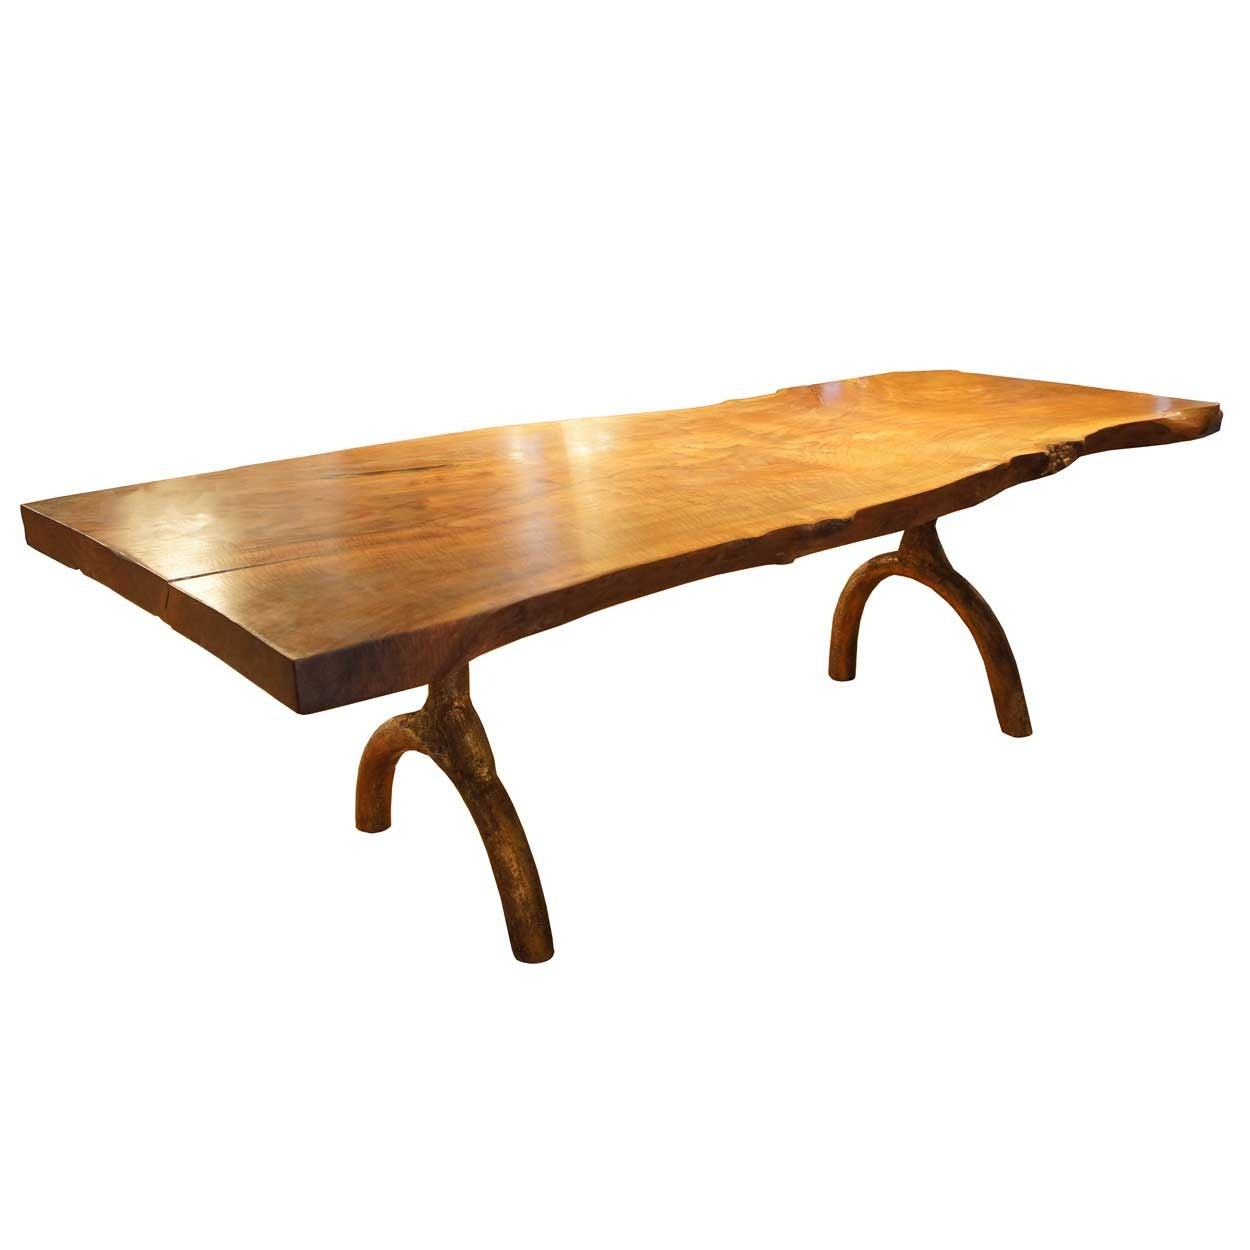 Large American Hudson Furniture Solid Walnut Slab Dining Table